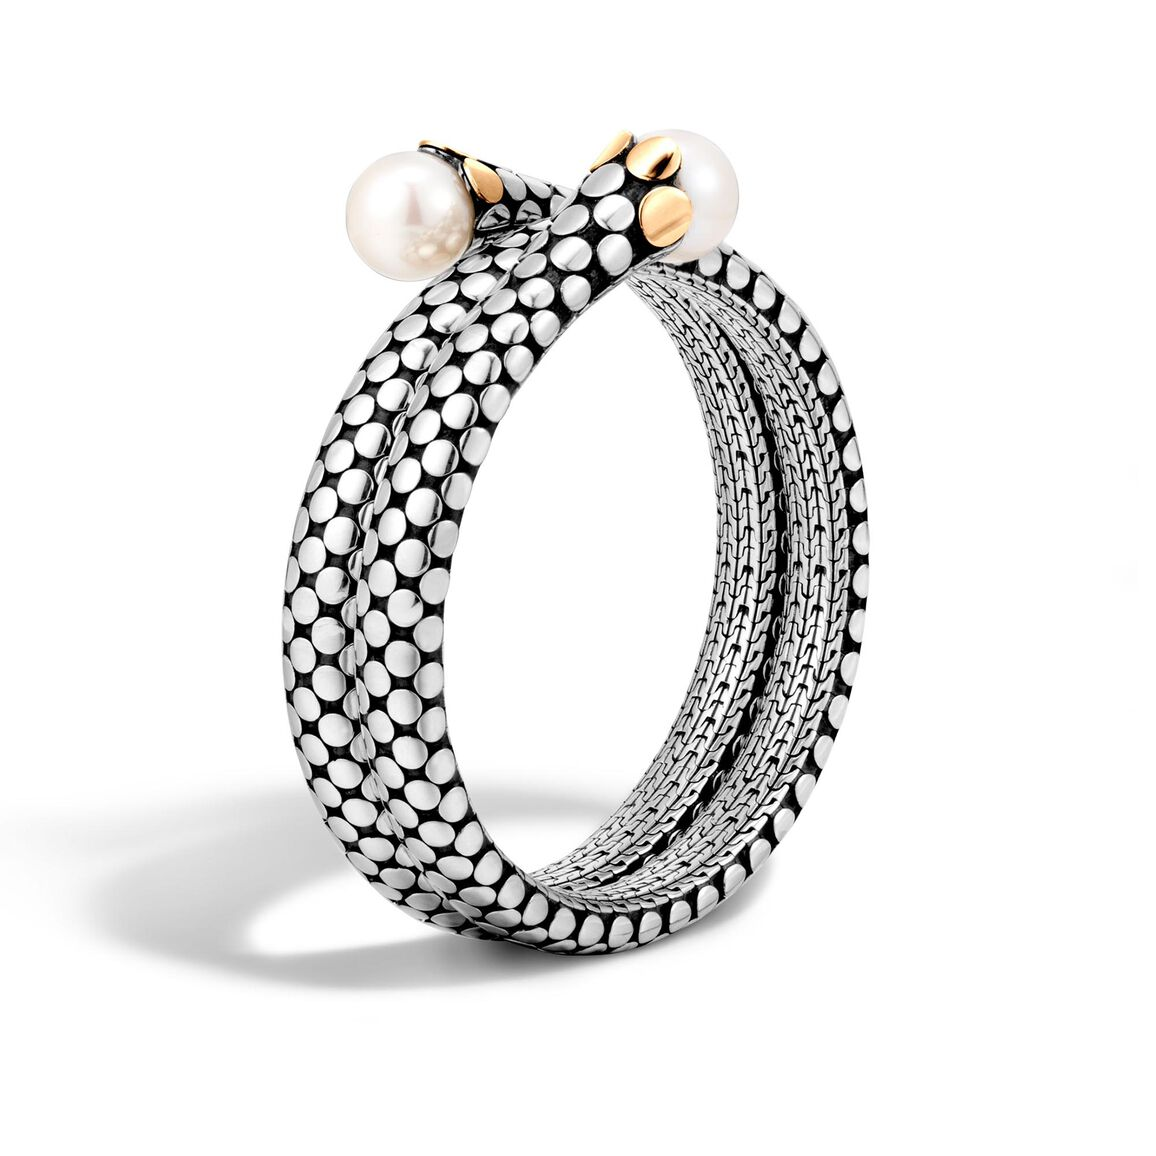 Dot Double Coil Bracelet in Silver and 18K Gold, 11MM Pearl